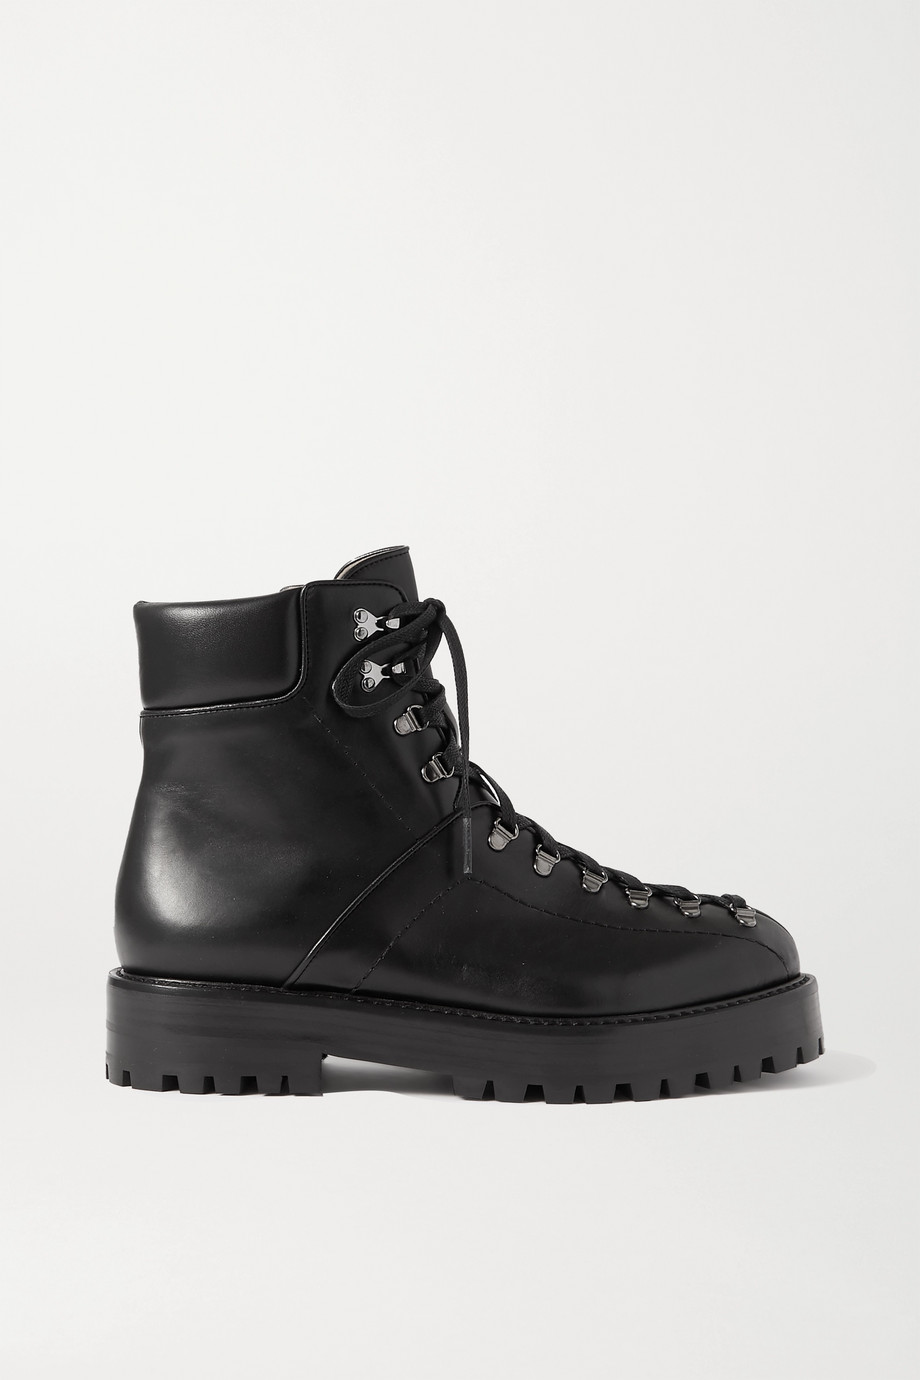 Alaïa 40 leather platform ankle boots